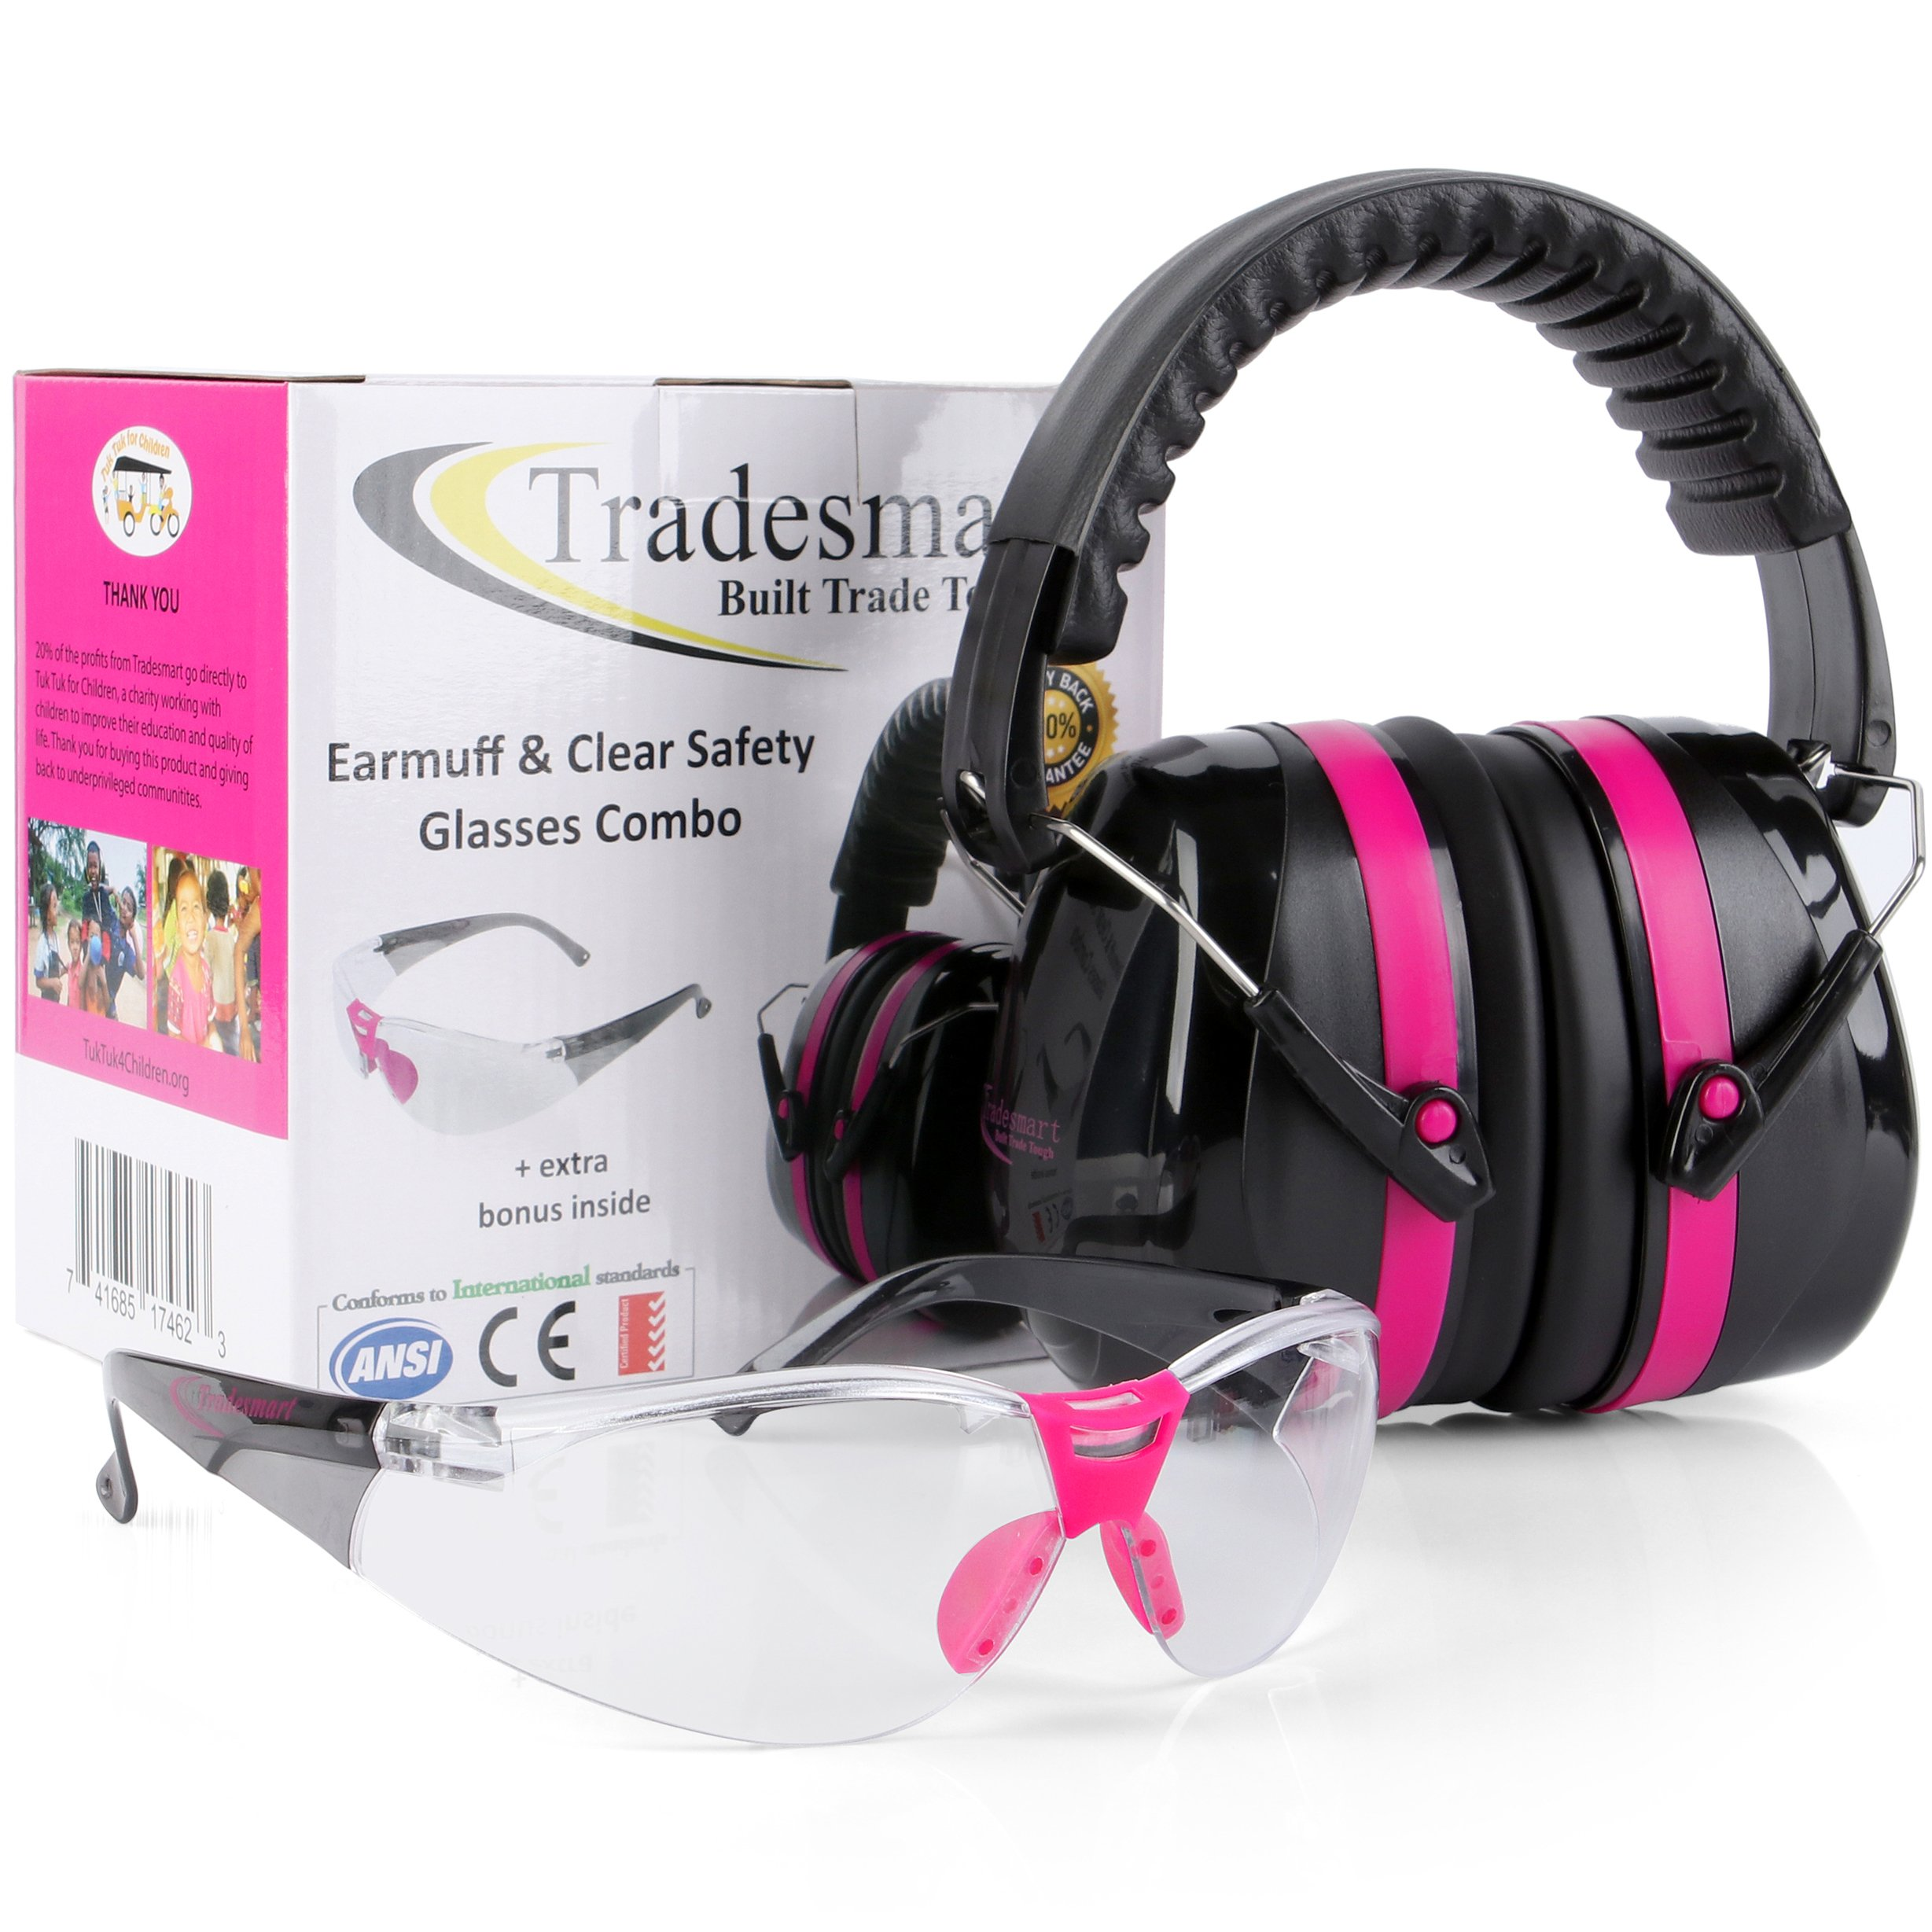 TRADESMART Pink Shooting Earmuffs & Clear Safety Glasses - 2 Piece Gun Range Safety Kit. Designed for Complete Protection & Style. Compact Design Fits in Hunting Bag. 20% of Profits Support Charity by TRADESMART BUILT TRADE TOUGH